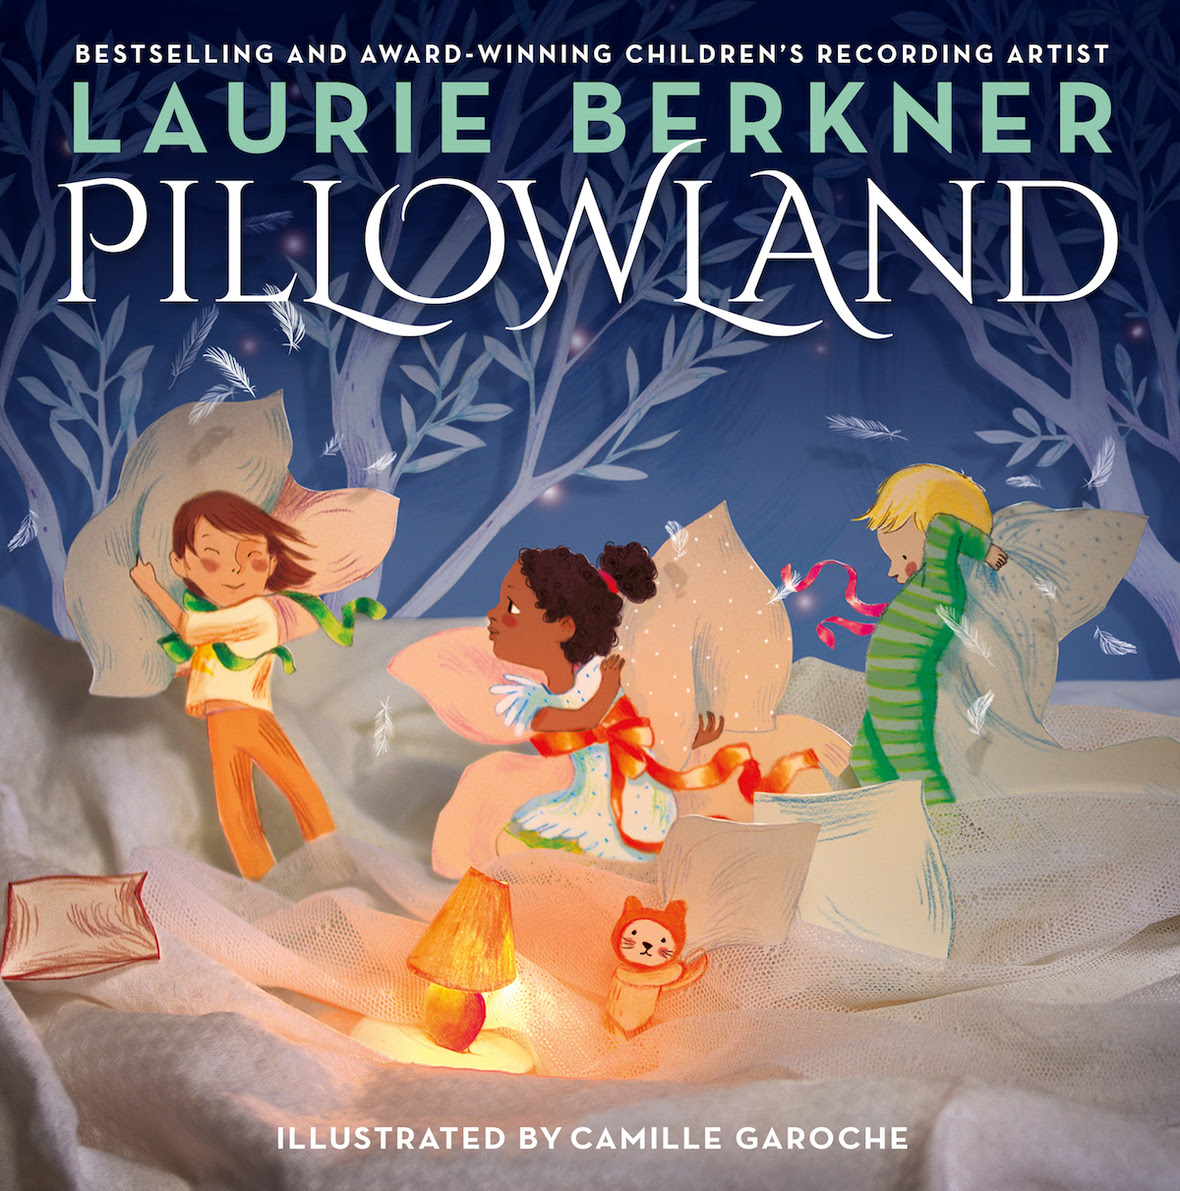 Laurie Berkner Pillowland